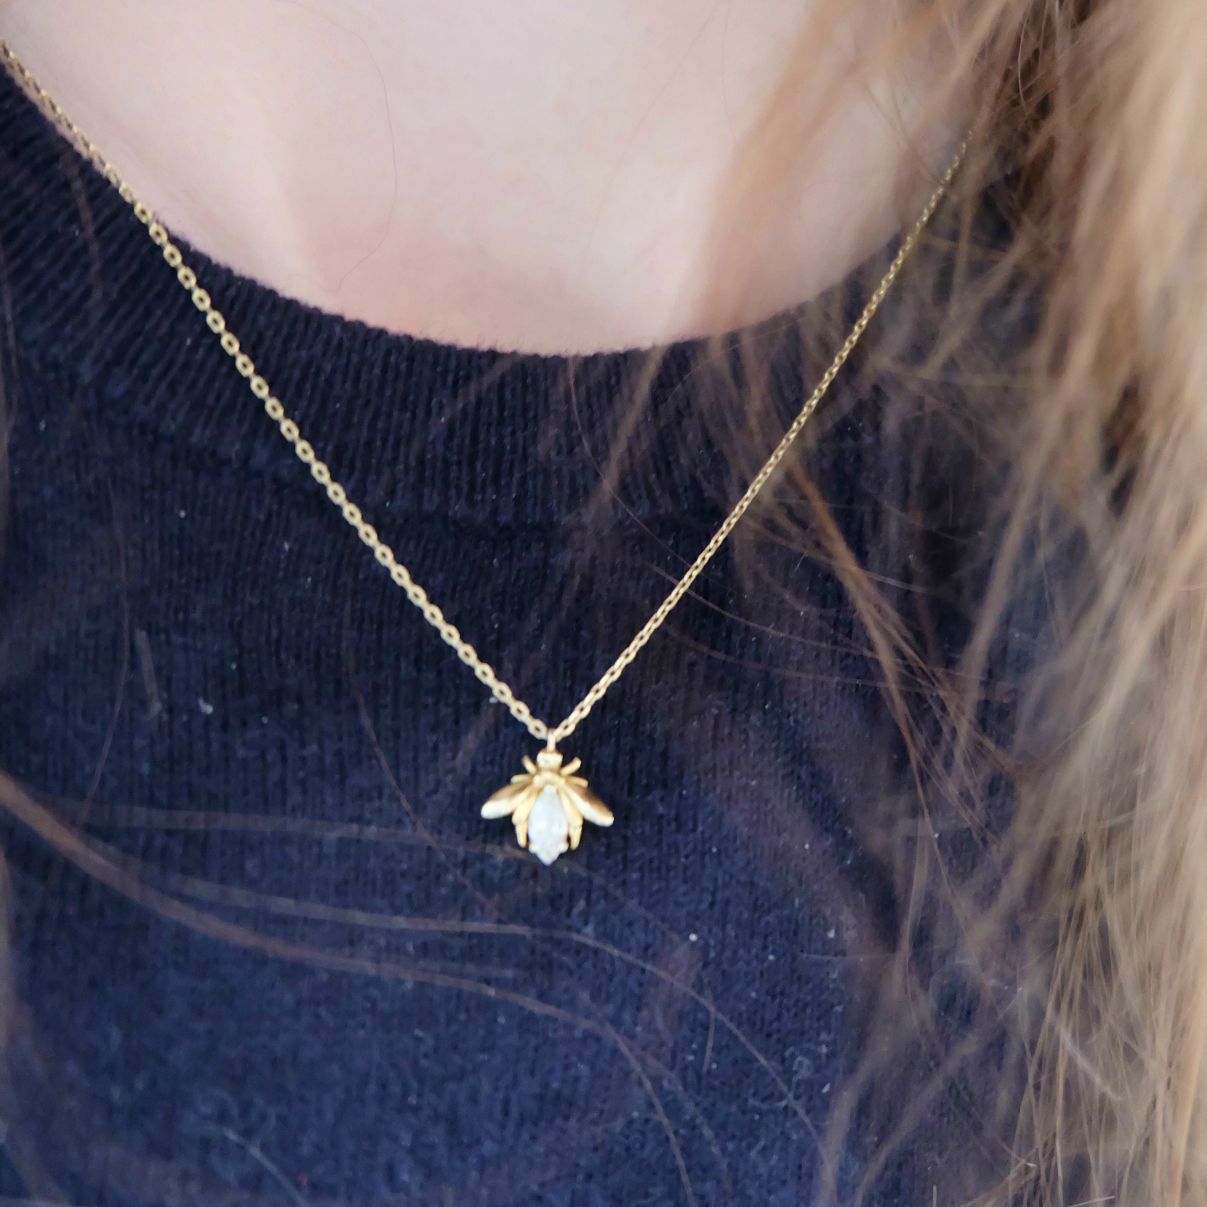 Topshop Baxter Jeans review, oliver bonas bee necklace